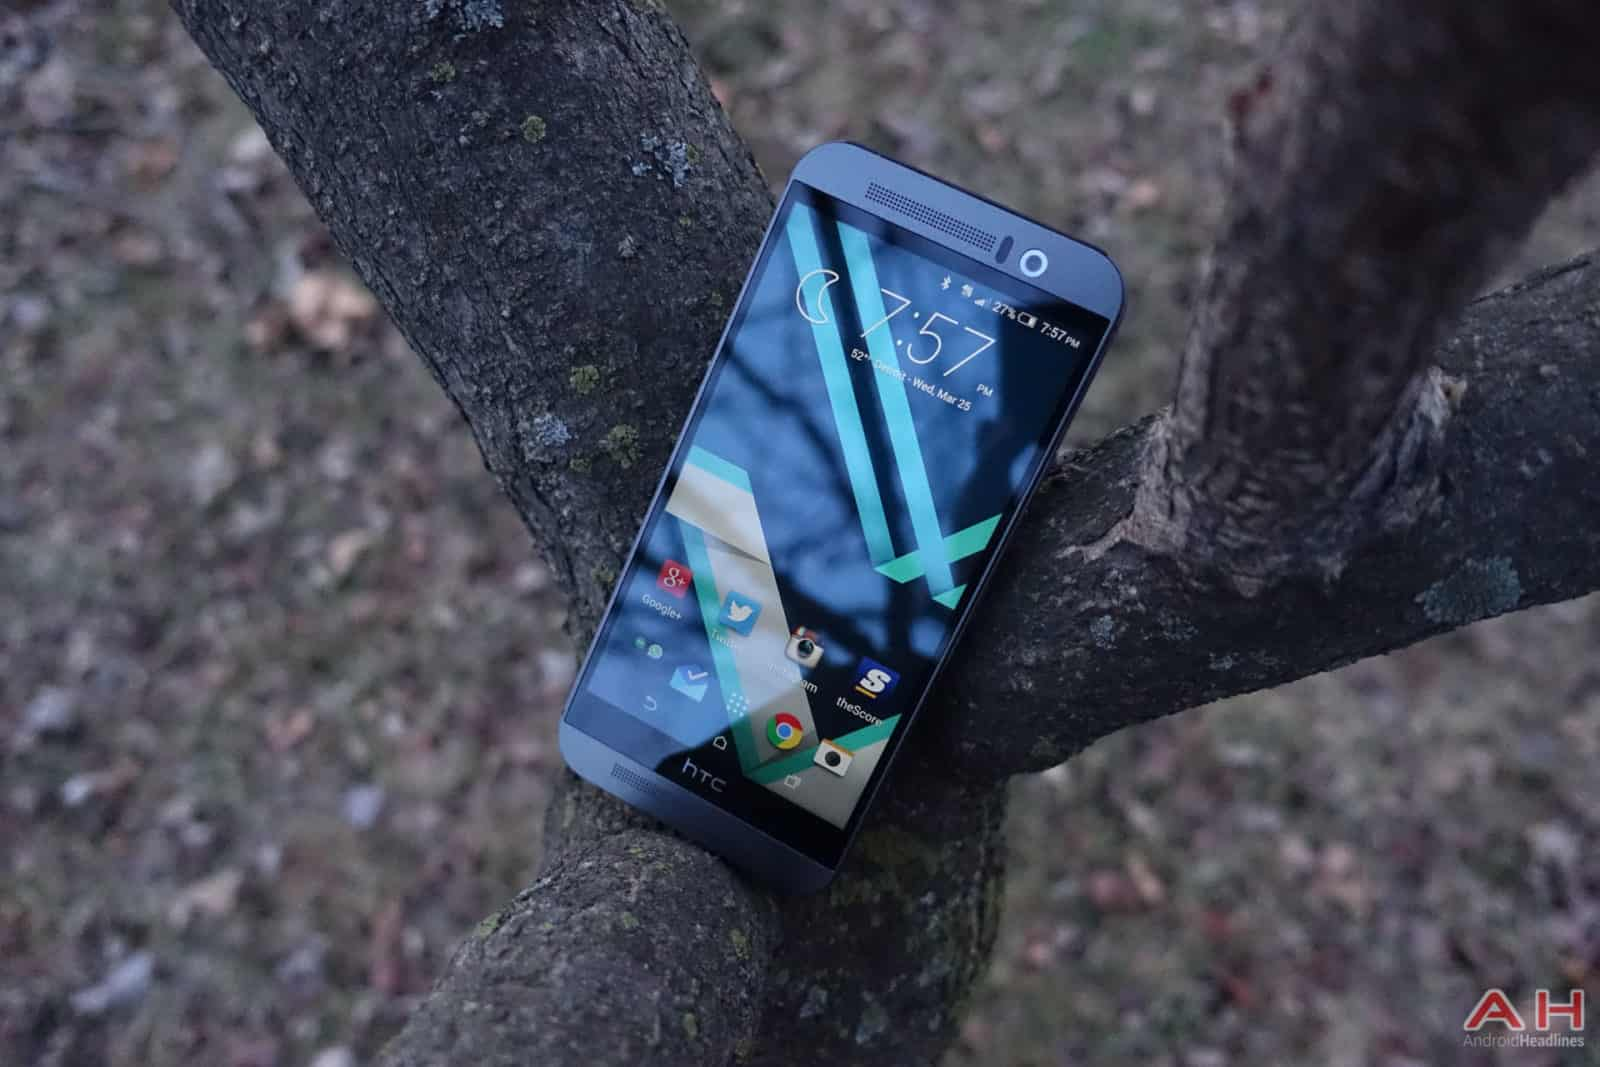 HTC-One-M9-Review-AH-26